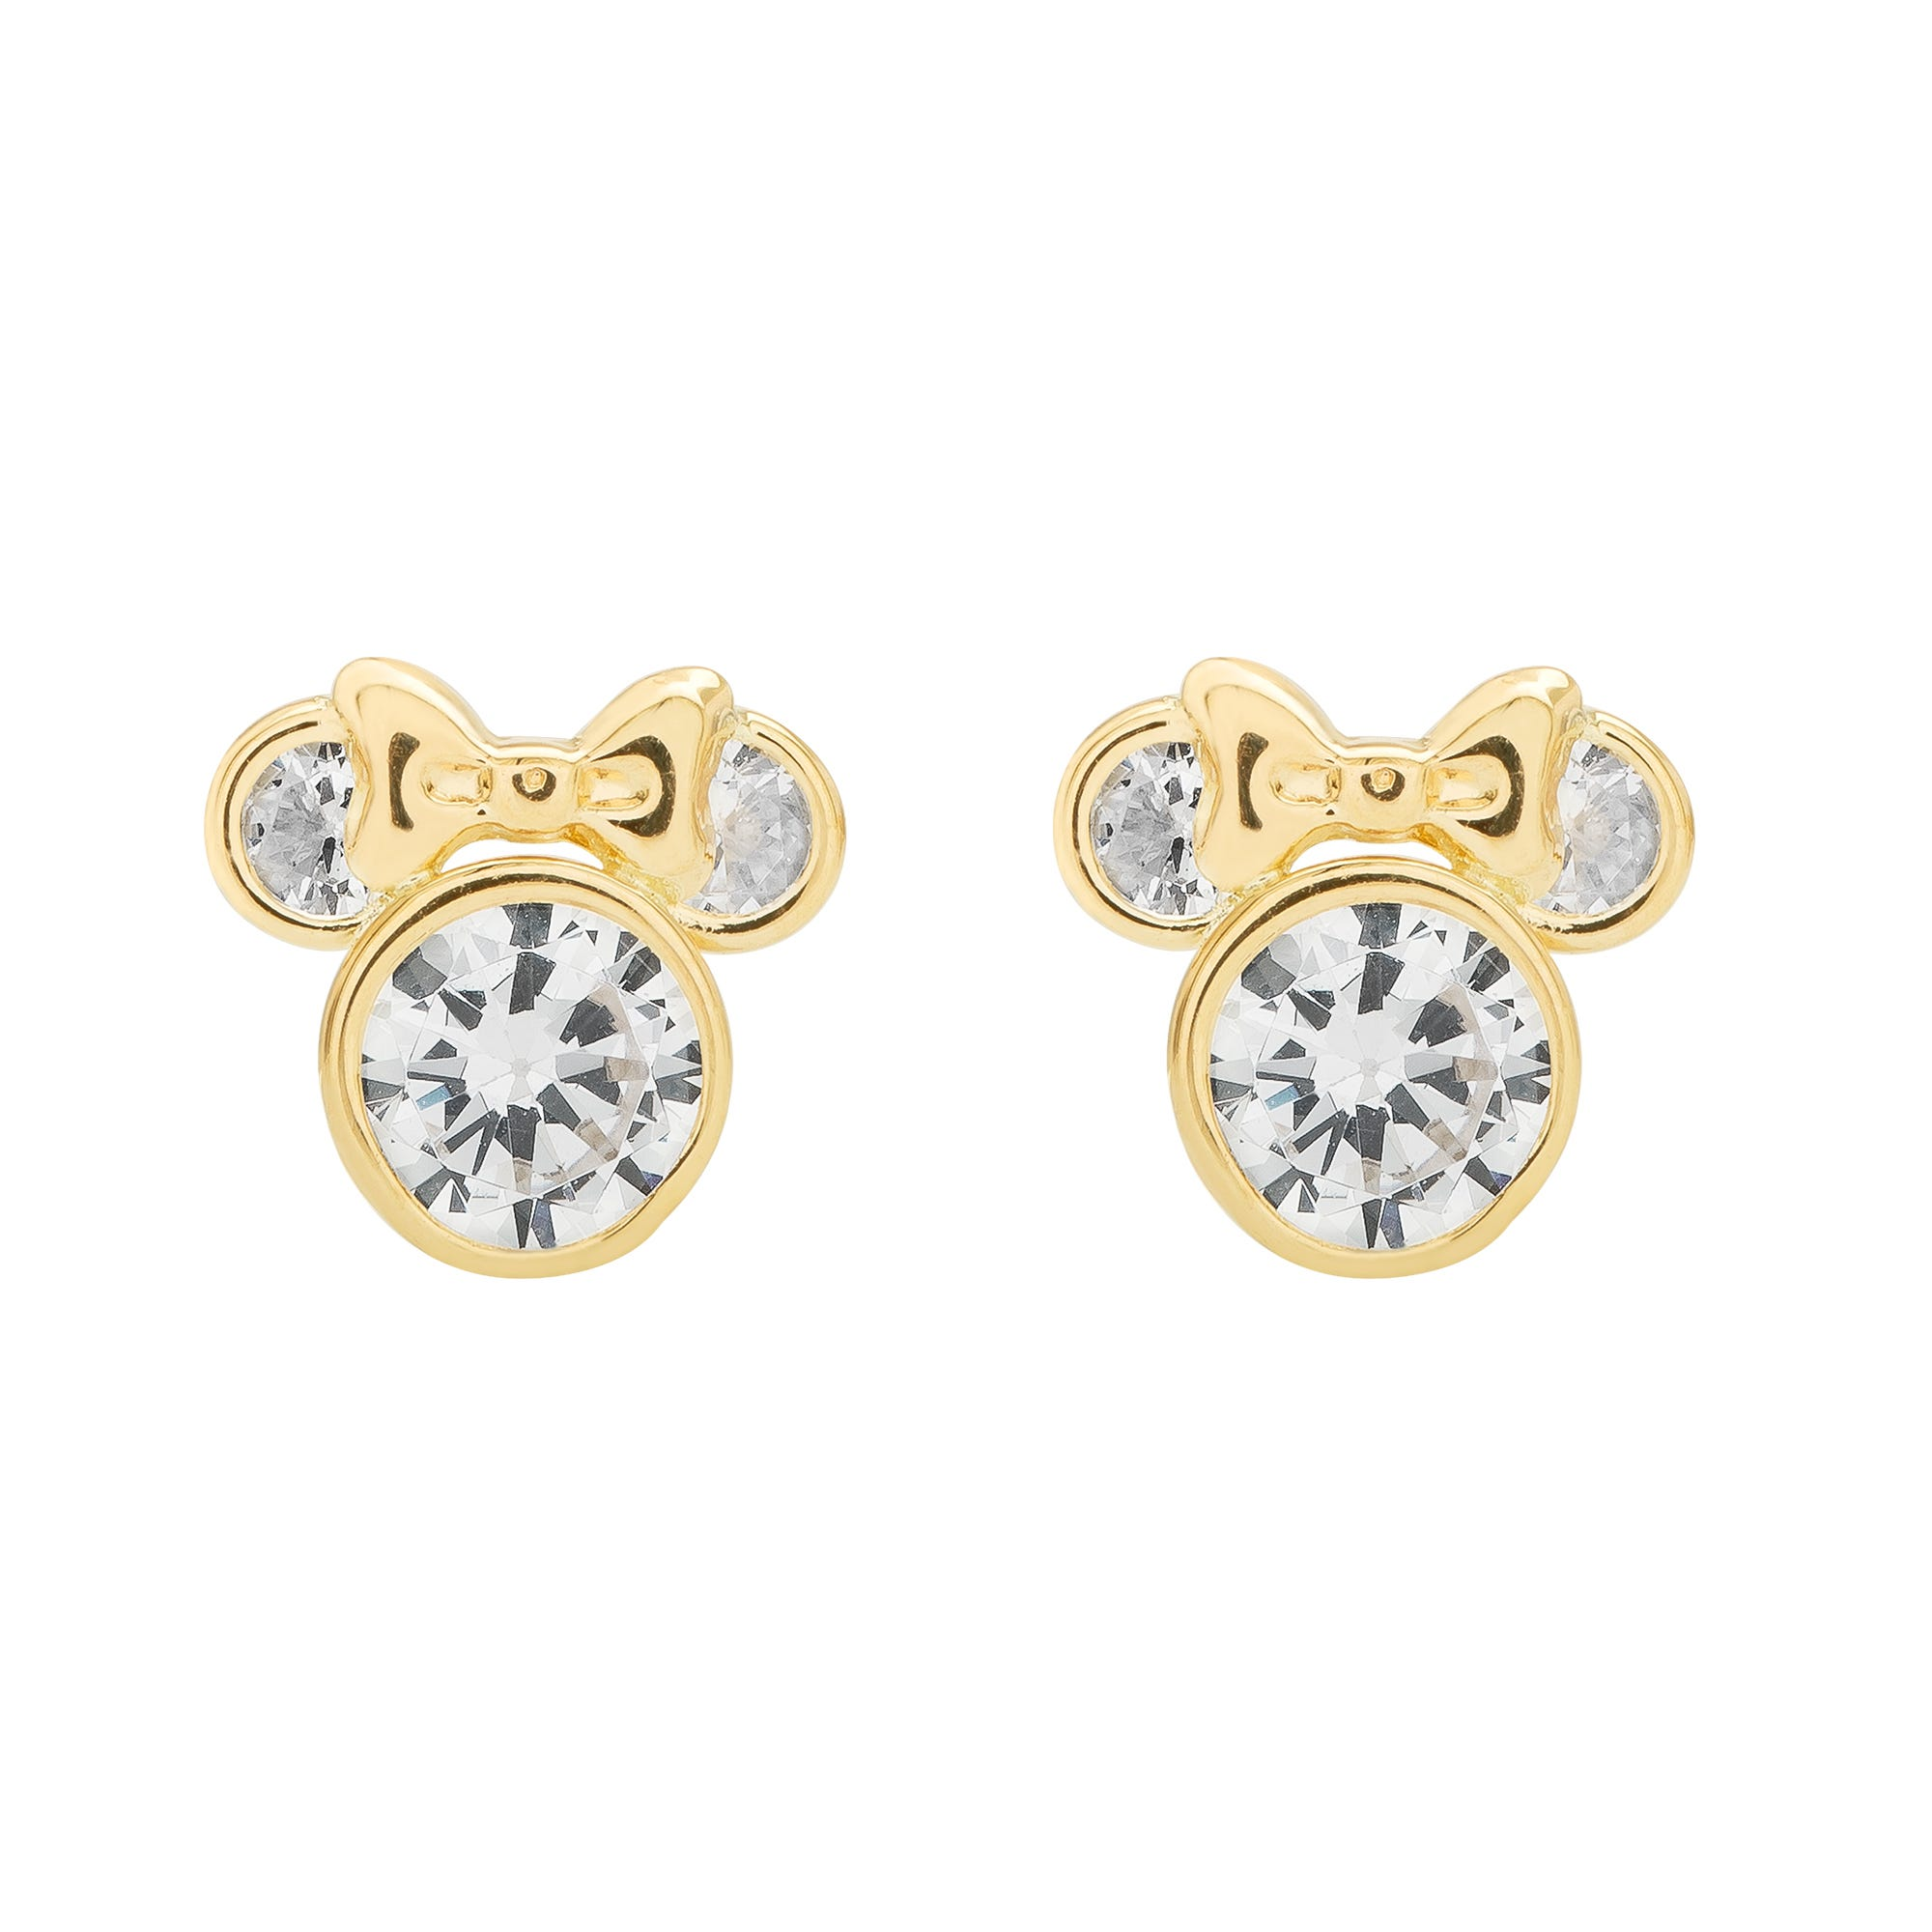 DISNEY© Minnie Mouse CZ Stud Earrings w/ Bow in 10k Yellow Gold